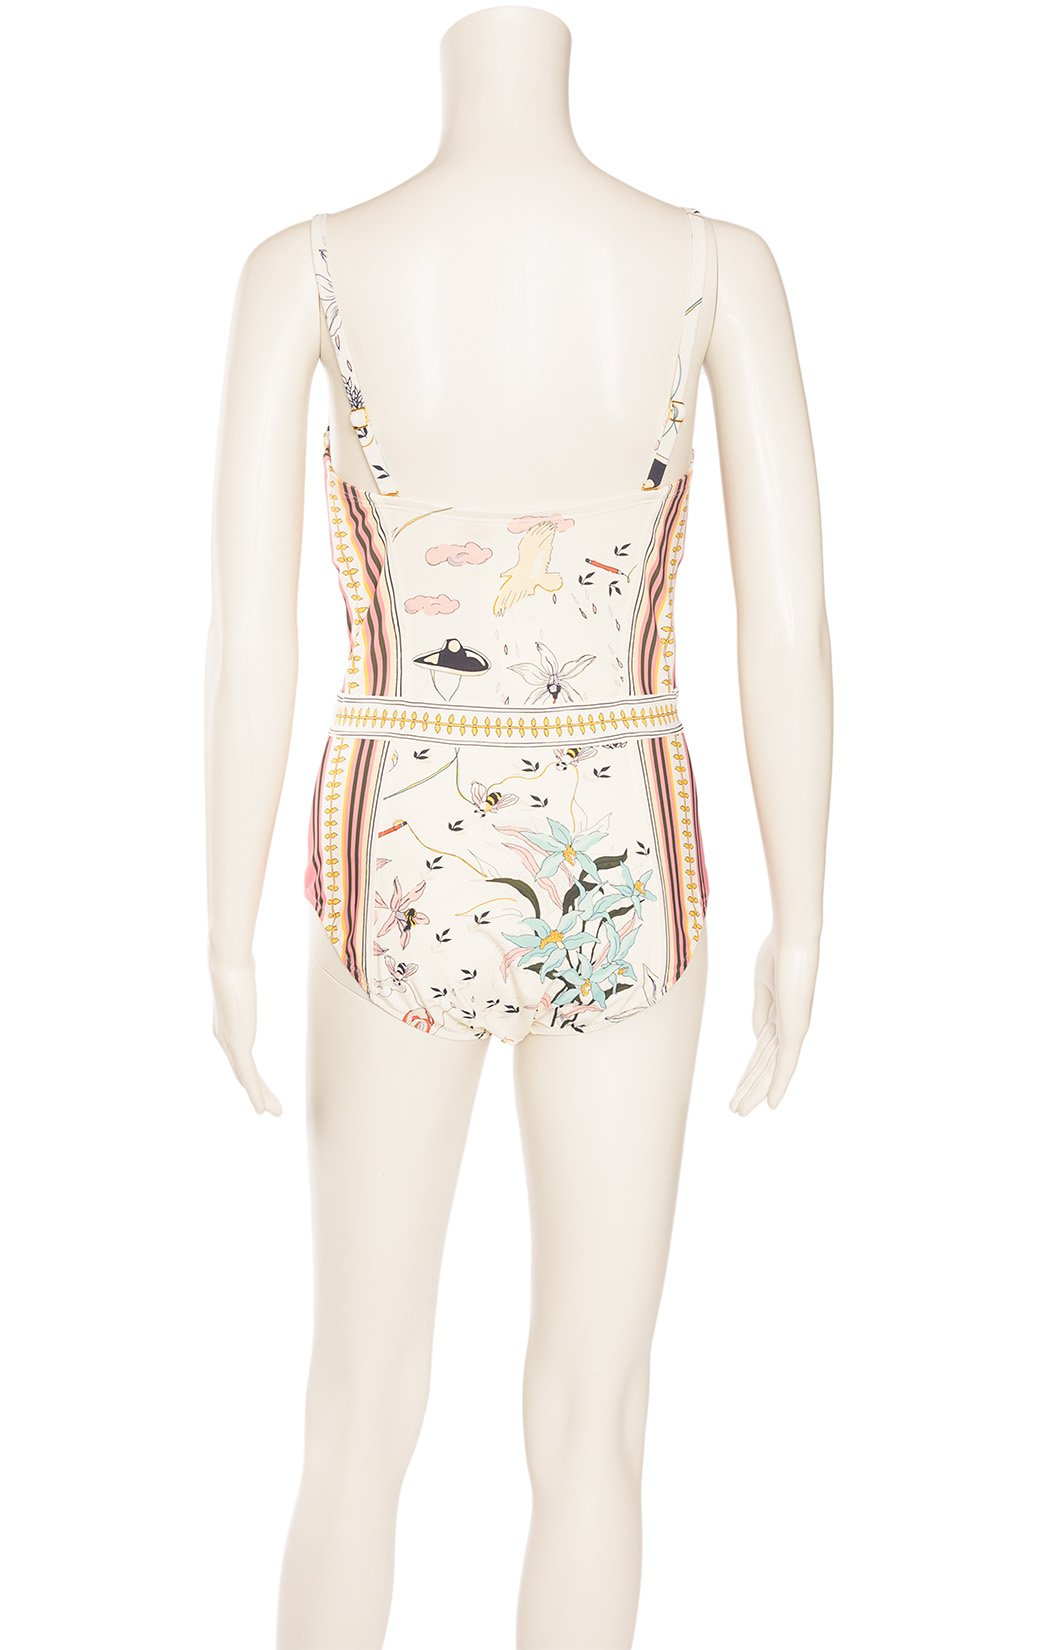 Back view of TORY BURCH with tags Bathing suit